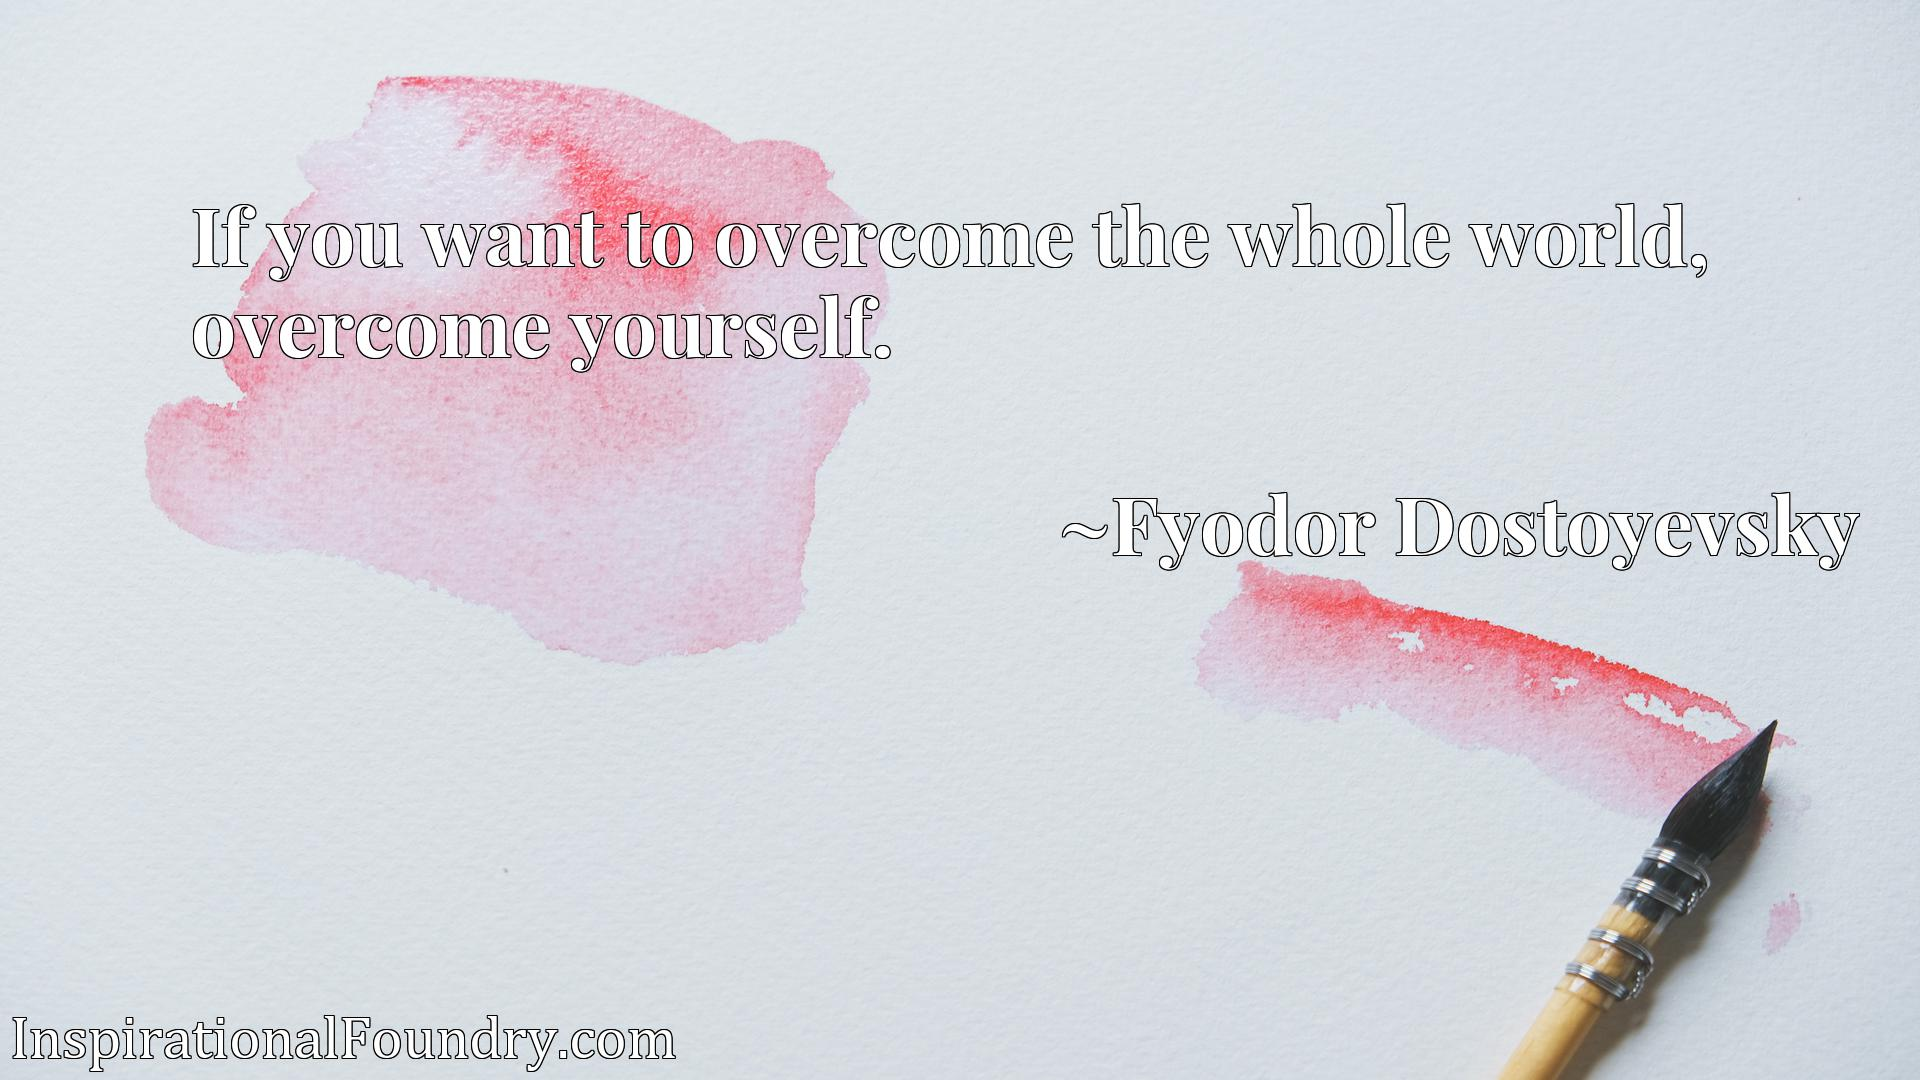 If you want to overcome the whole world, overcome yourself.